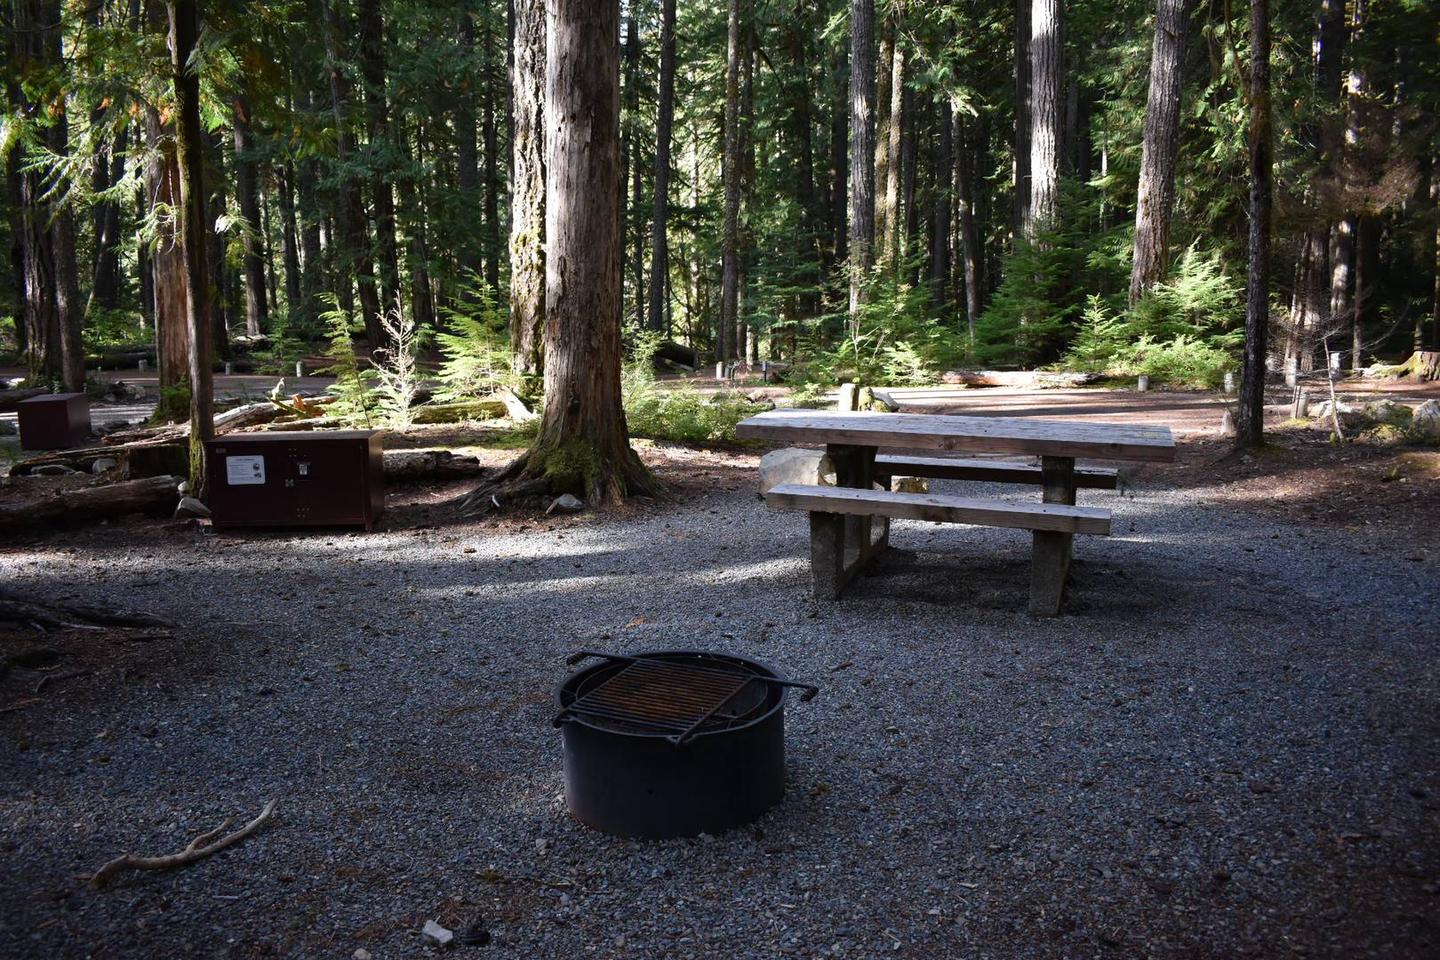 Ohanapecosh Campground - Site D009 AmenitiesCampers are provided with a picnic table, food storage box, and fire pit.